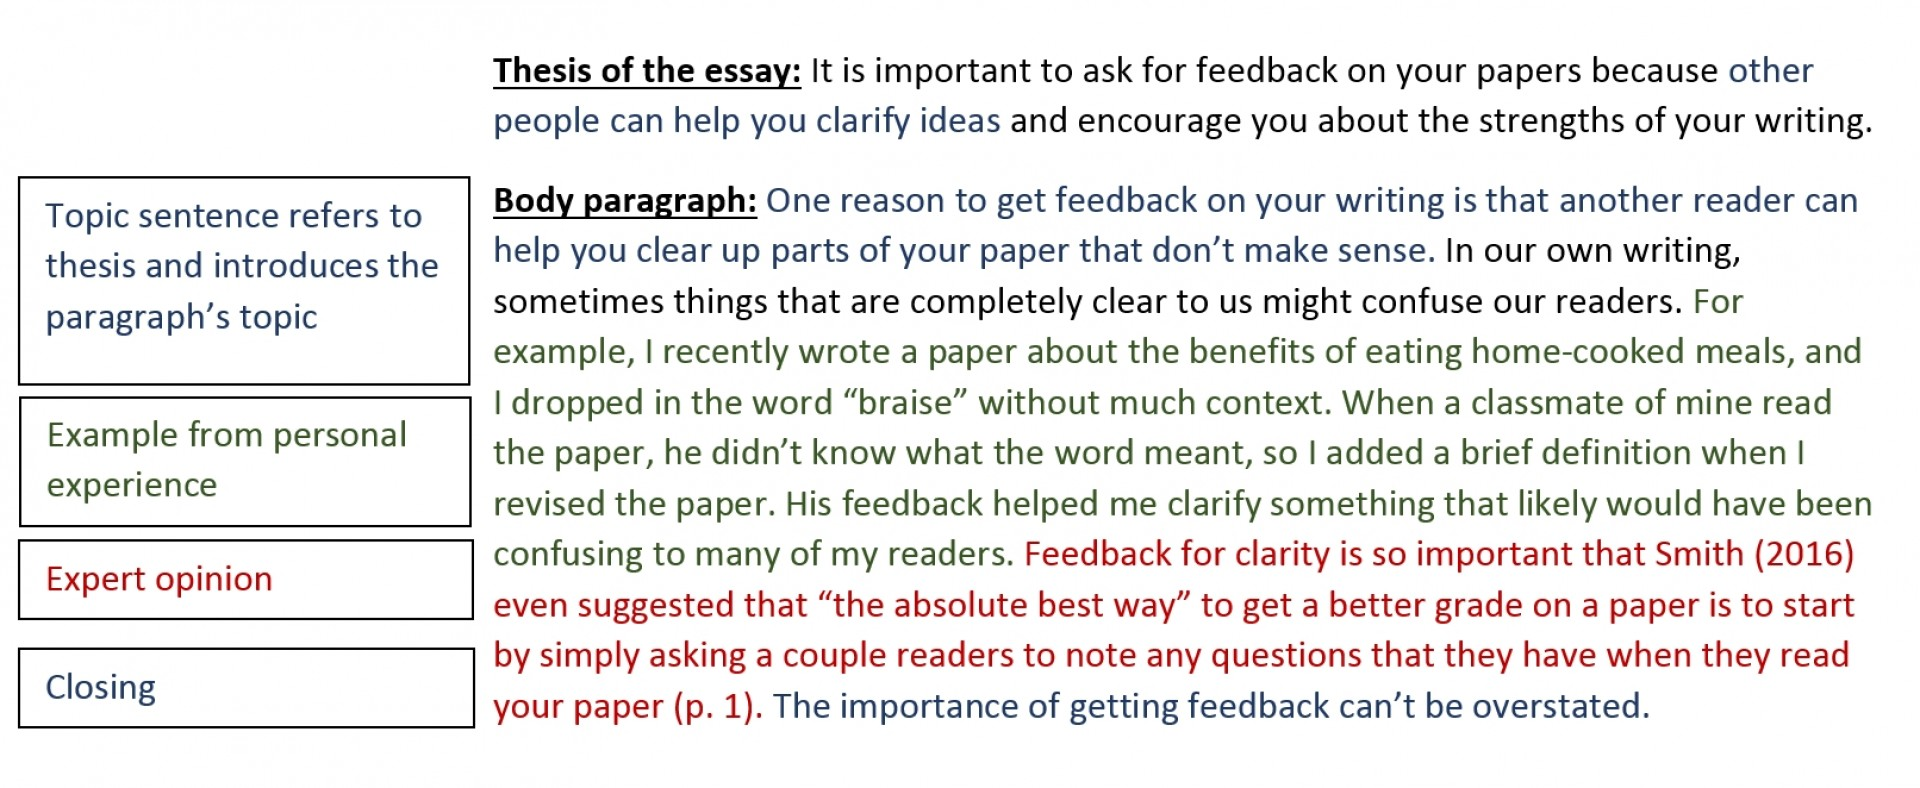 023 Mla Research Paper Introduction Paragraph Body Paragraphs Writing Your Guides At Eastern With Regard To Rare 1920